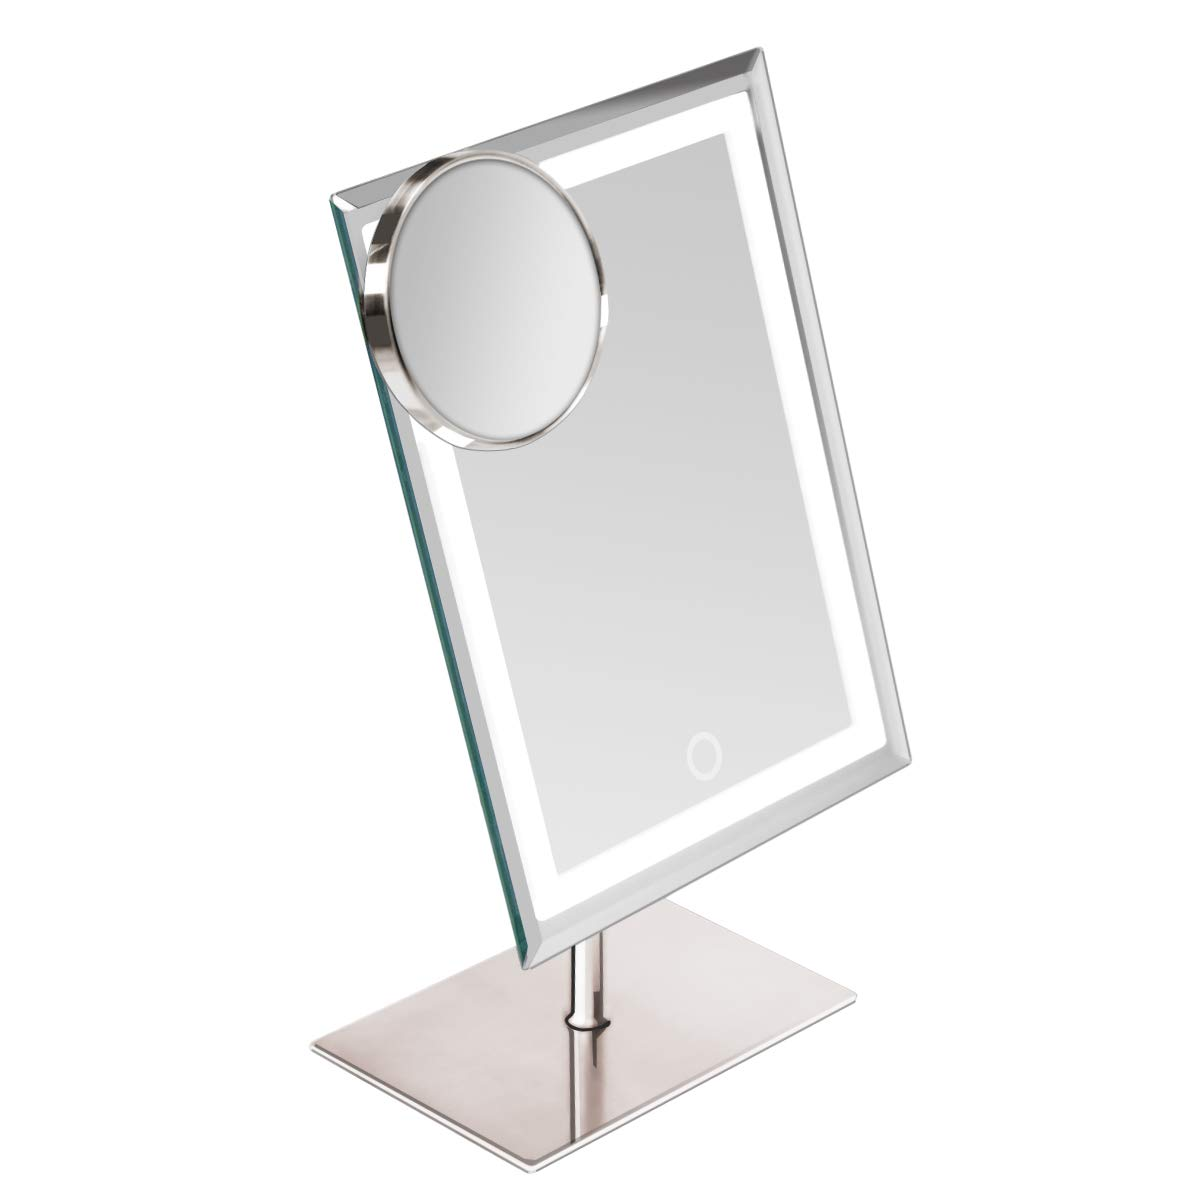 Waneway Lighted Makeup Vanity Mirror with 80 LEDs Lights and 10X Magnification Spot Mirror, Light up Dressing Table Cosmetic Mirror, 3X Brighter Dimmable Lighting, Full Metal Sleek Design,Satin Nickel